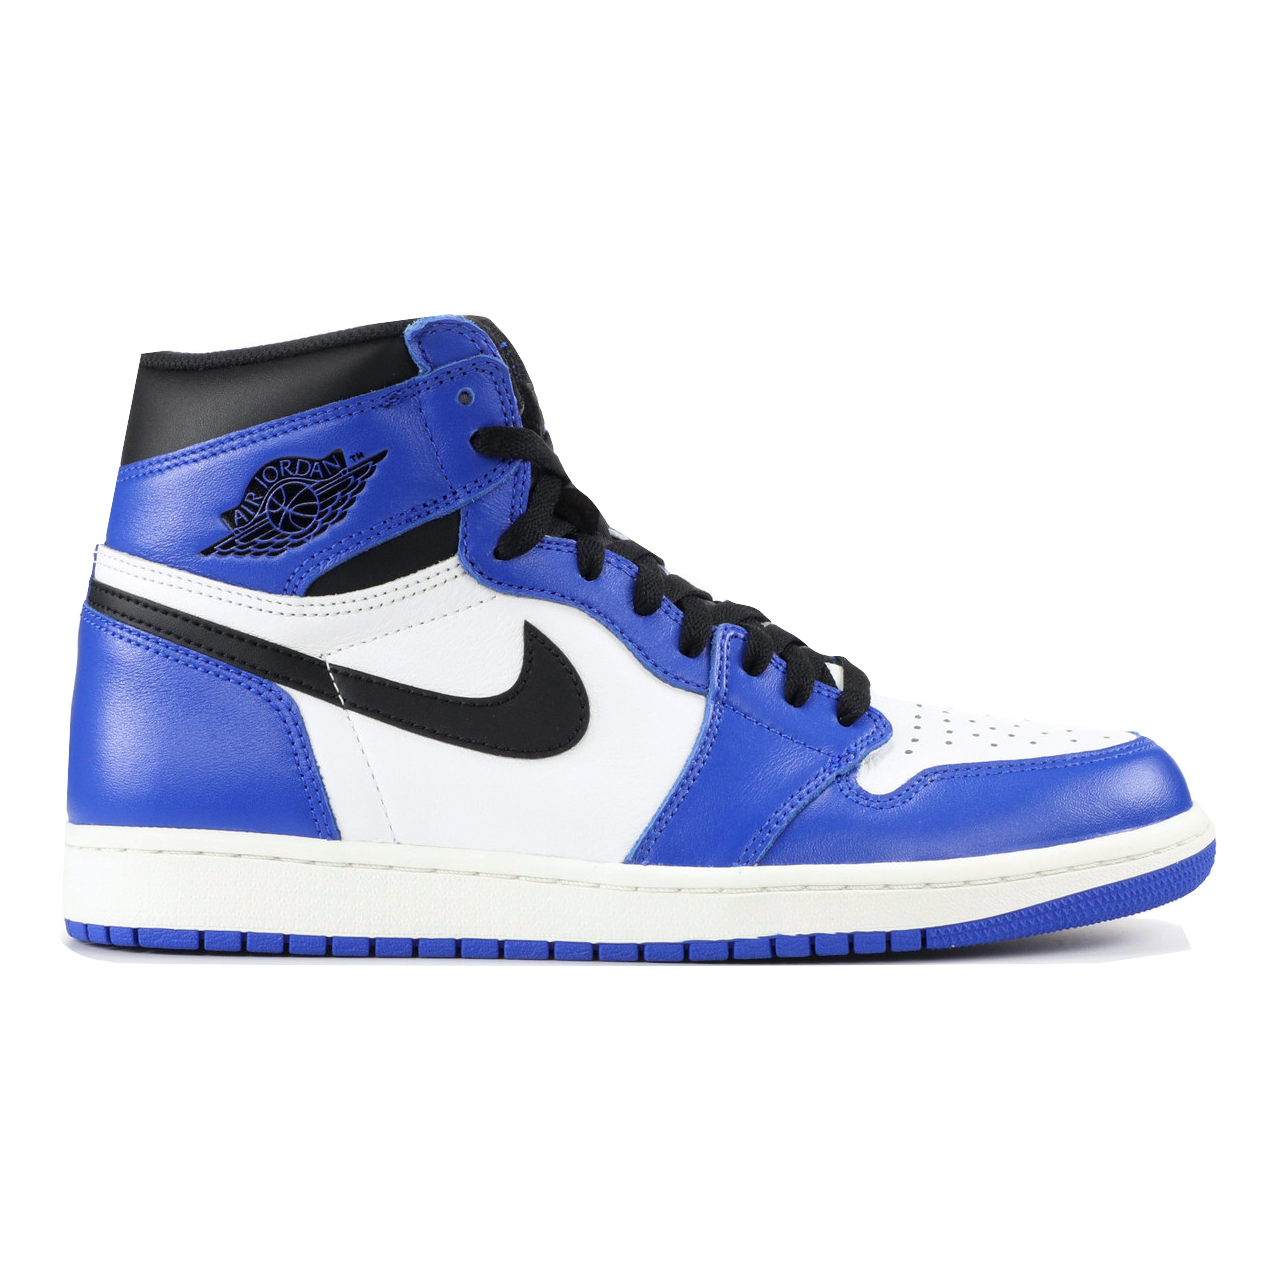 Air Jordan 1 Retro High OG - Game Royal